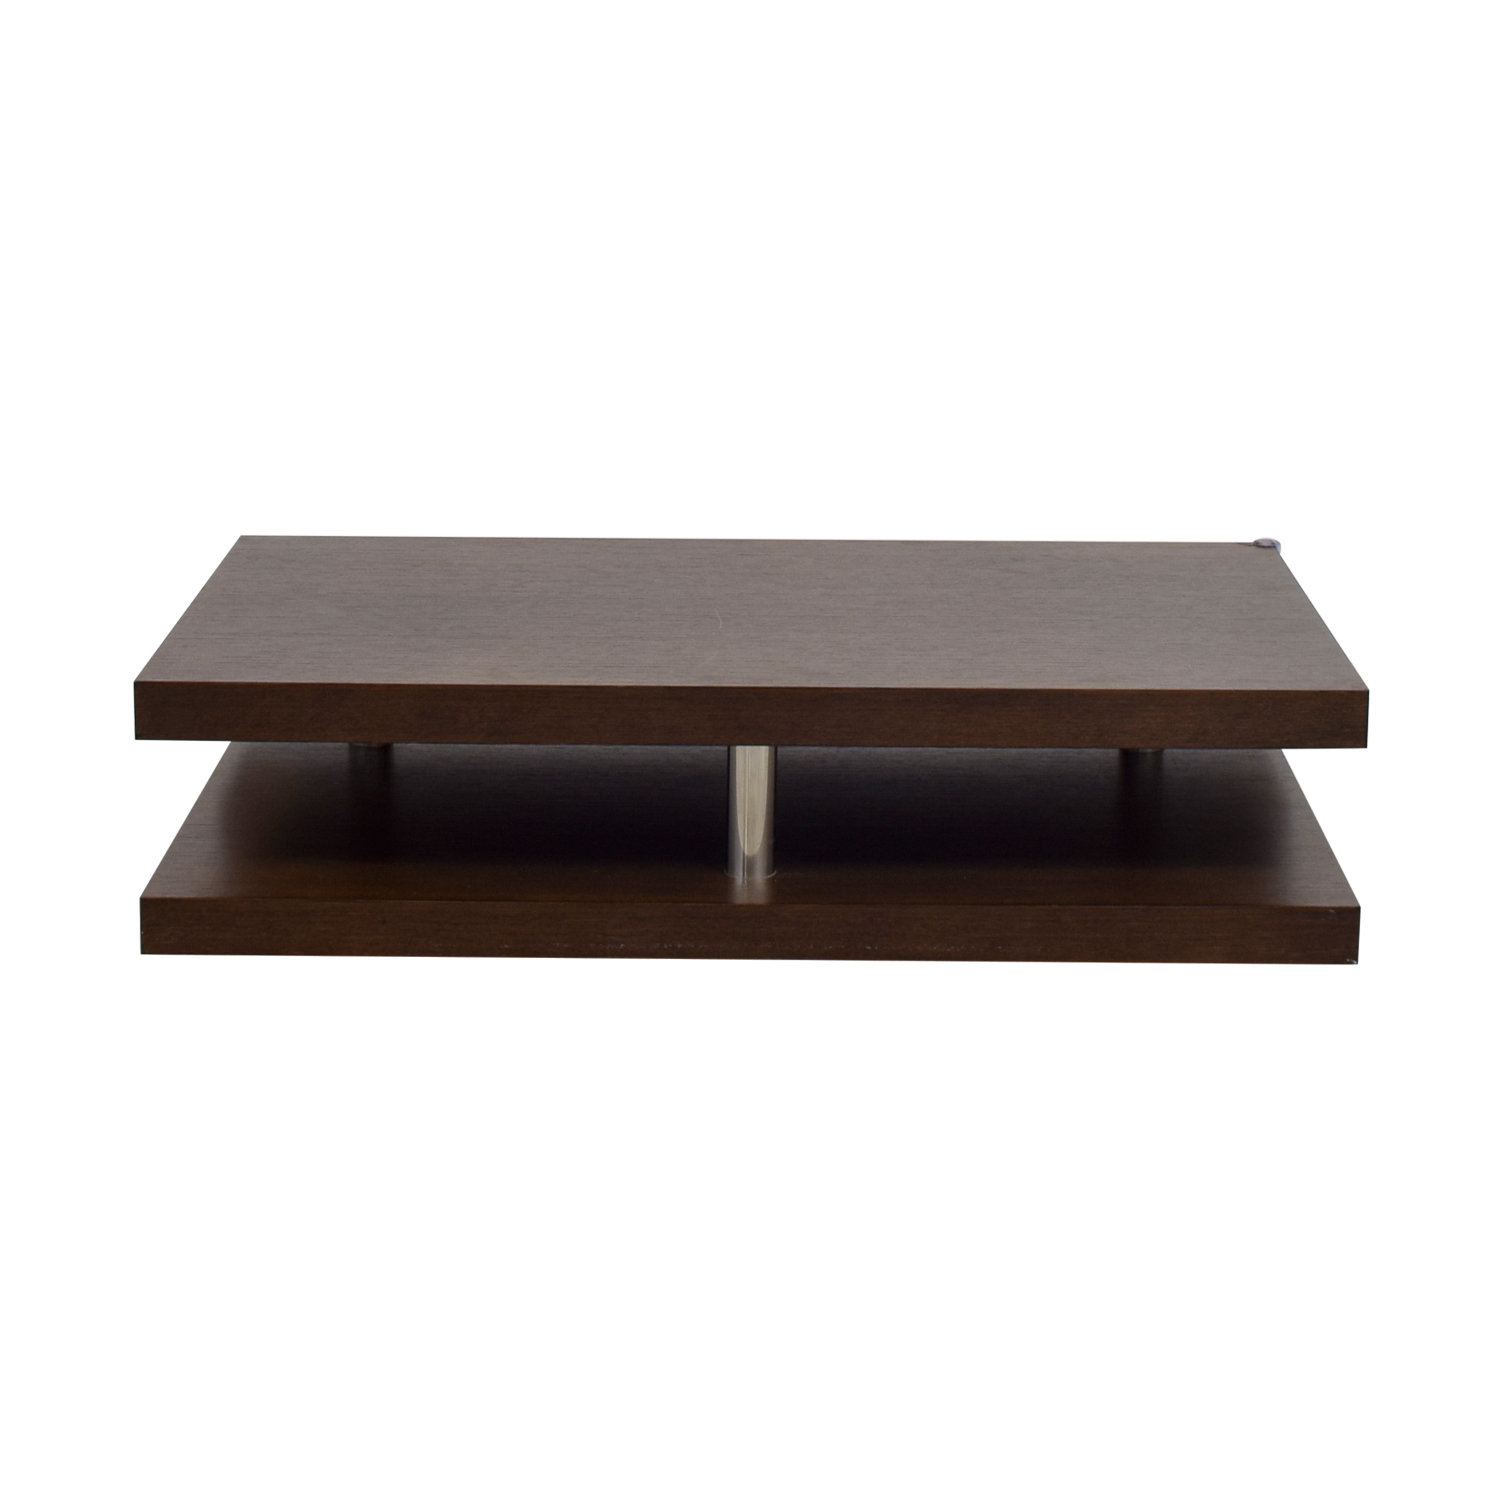 71 off brown coffee table tables Tables for coffee shop